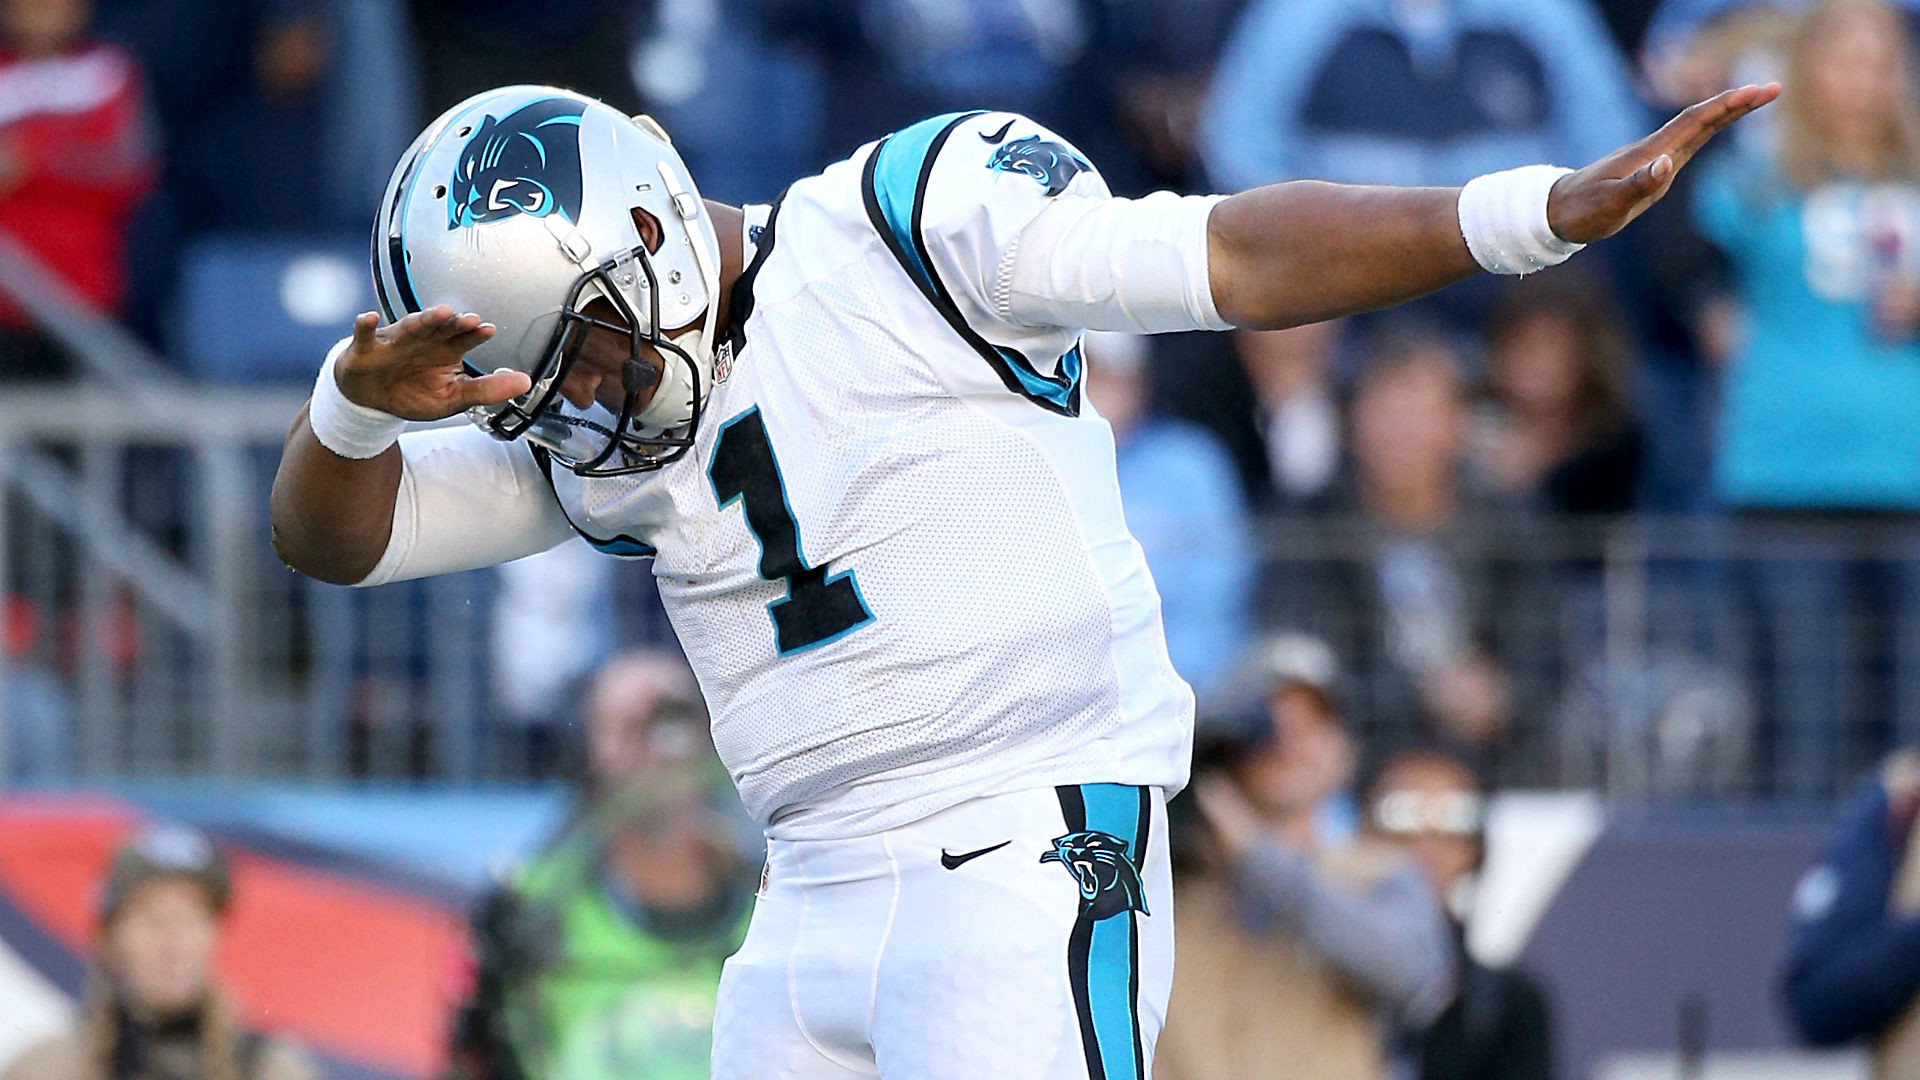 Panthers fans get ready to 'dab' with Cam Newton on Sunday   NFL   Sporting  News